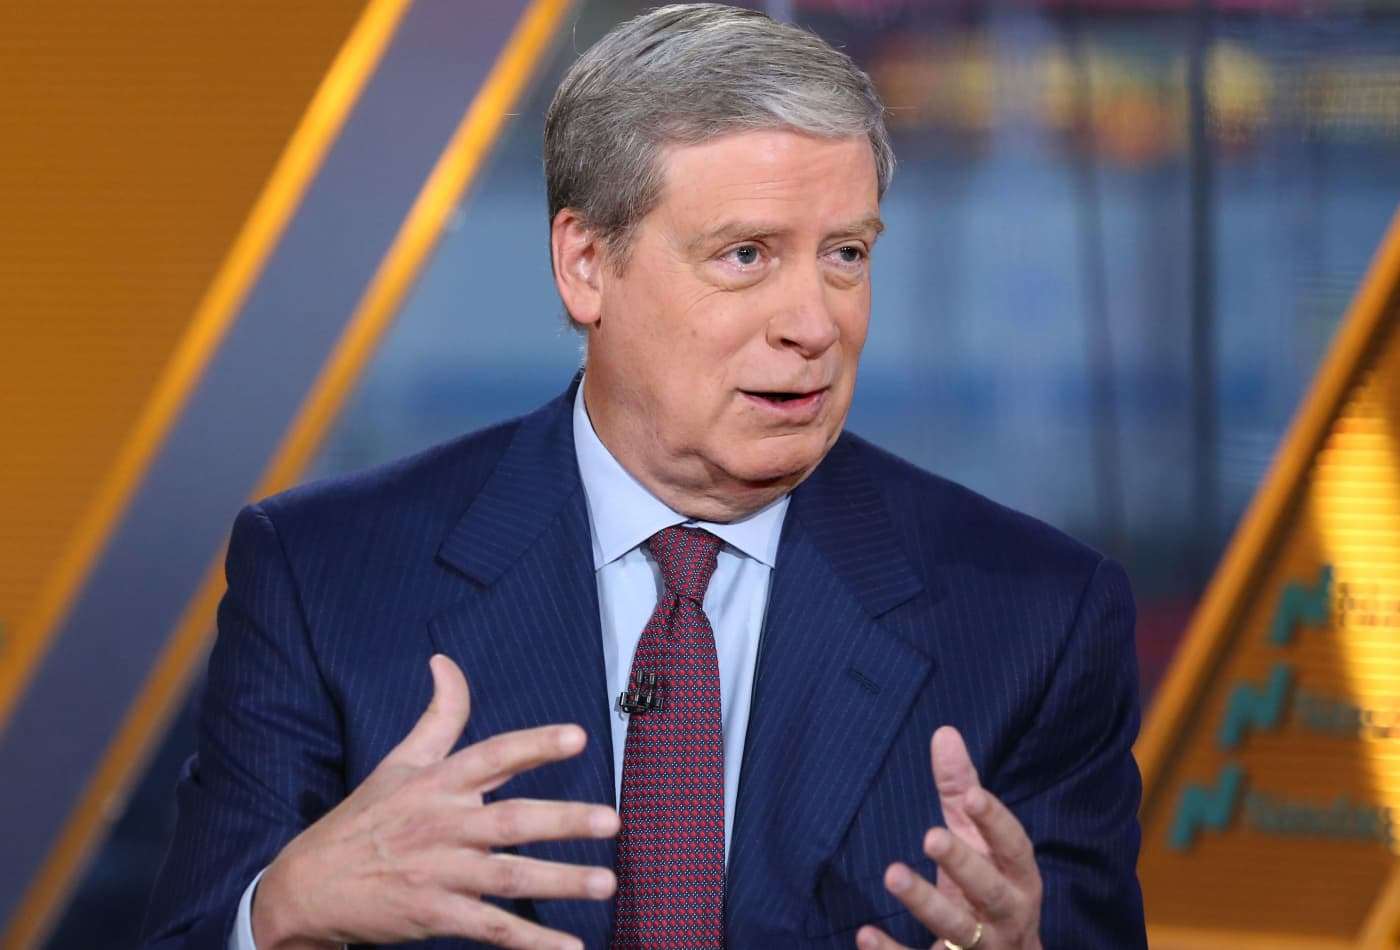 Stanley Druckenmiller says the Fed is endangering the dollar's global reserve status